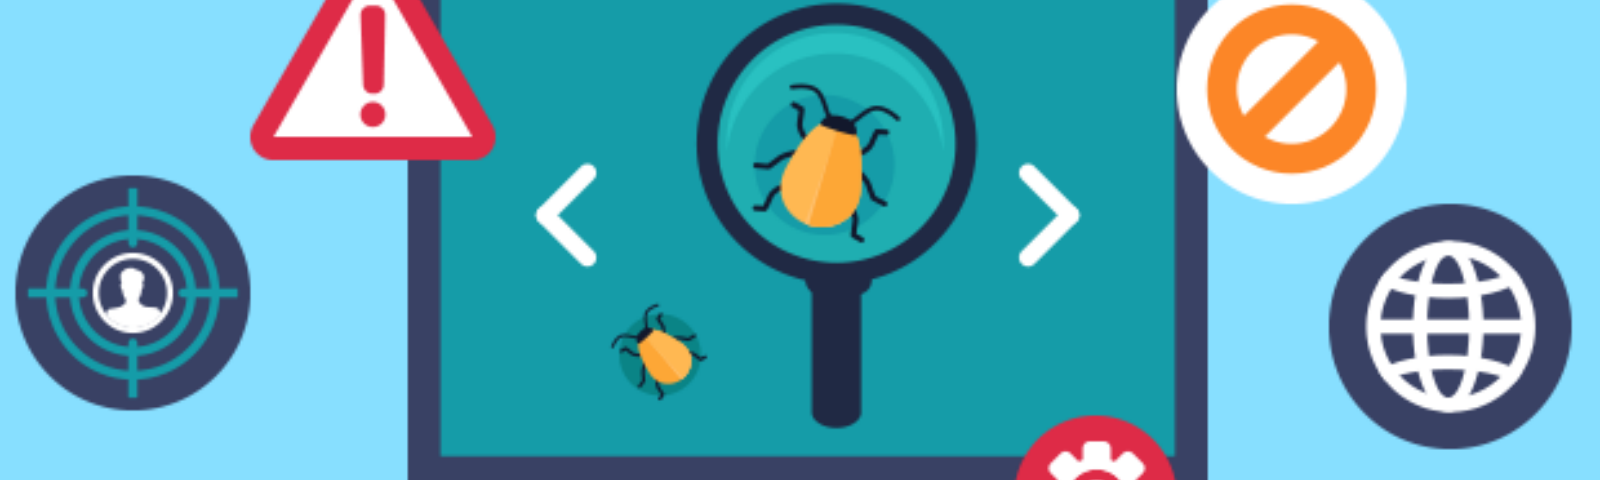 10 Rules of Bug Bounty - By